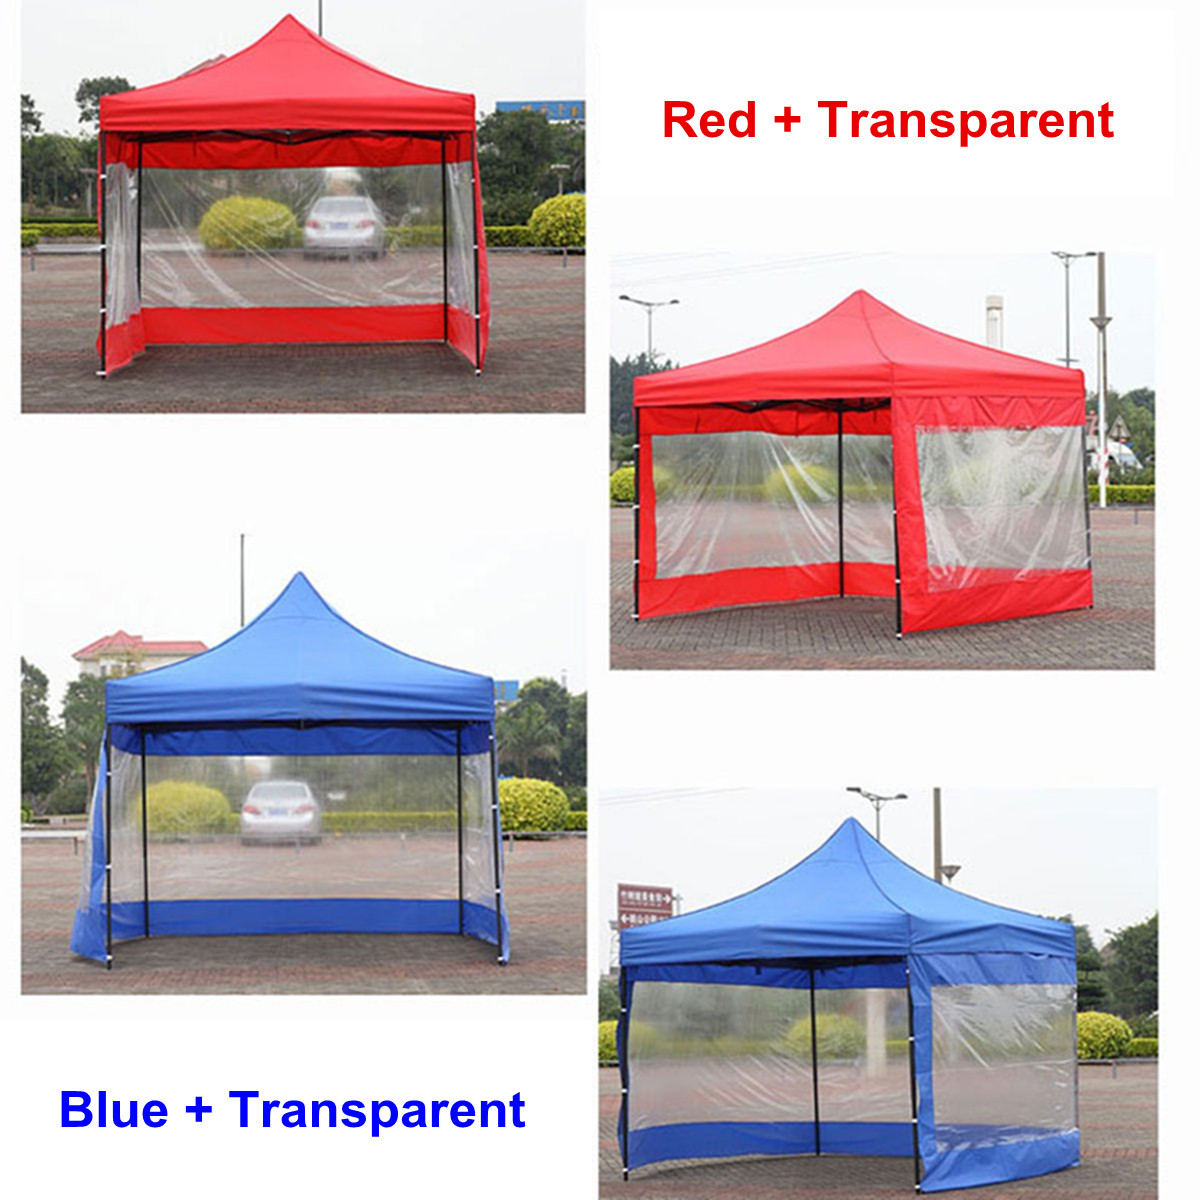 2 Color Polyester Canopy Side Wall Carport Garage Enclosure Shelter Tent Party Sun Wall Sunshade Shelter Tarp Sidewall Sunshade